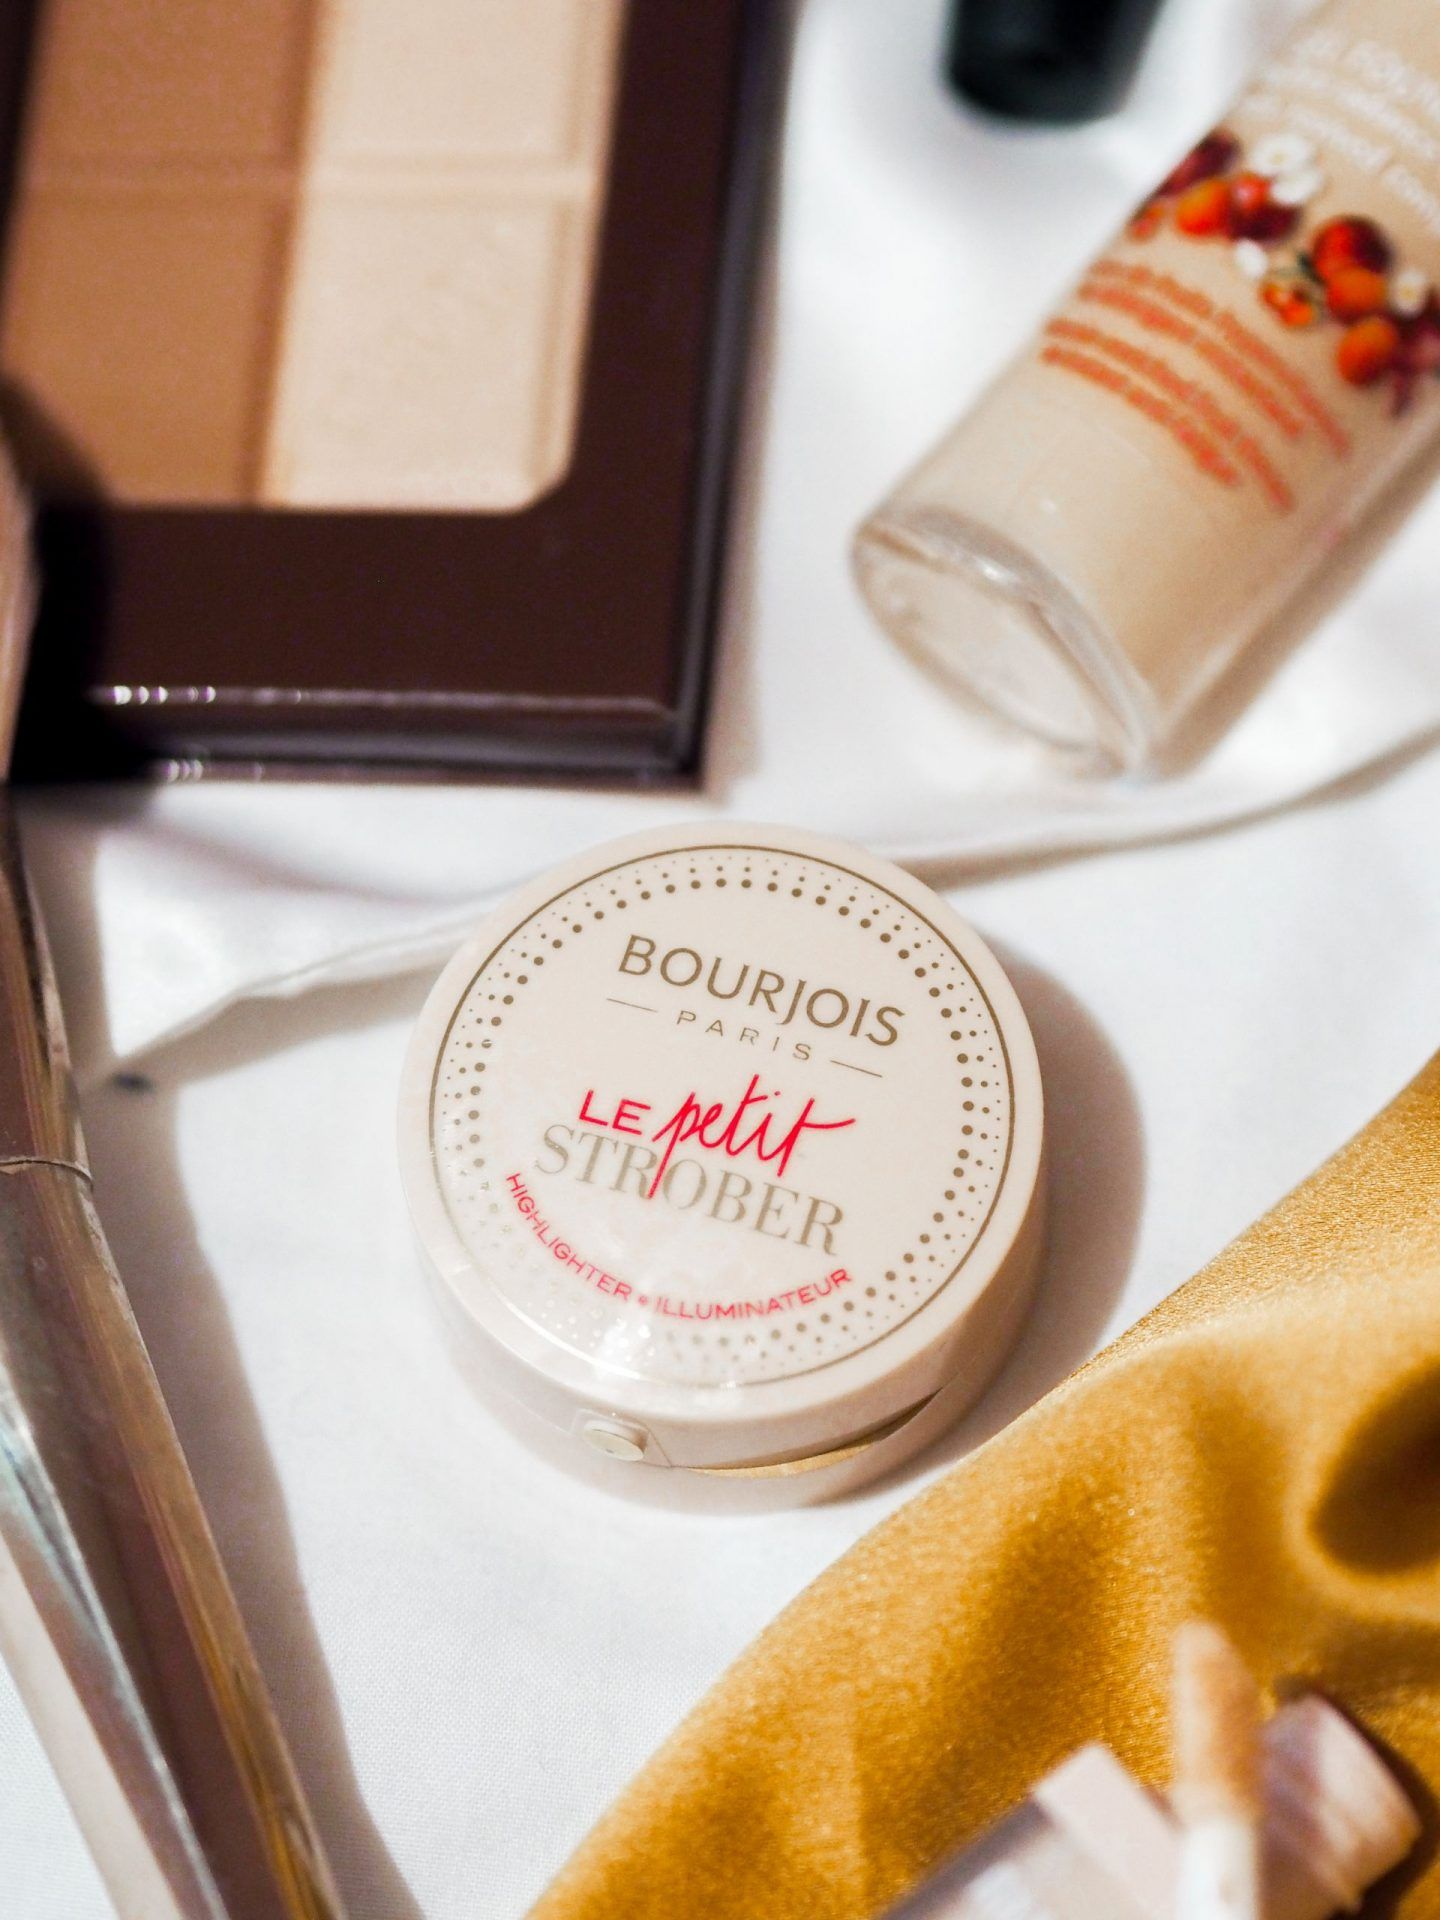 Is Bourjois Leaving The UK? 7 Products To Try Before It